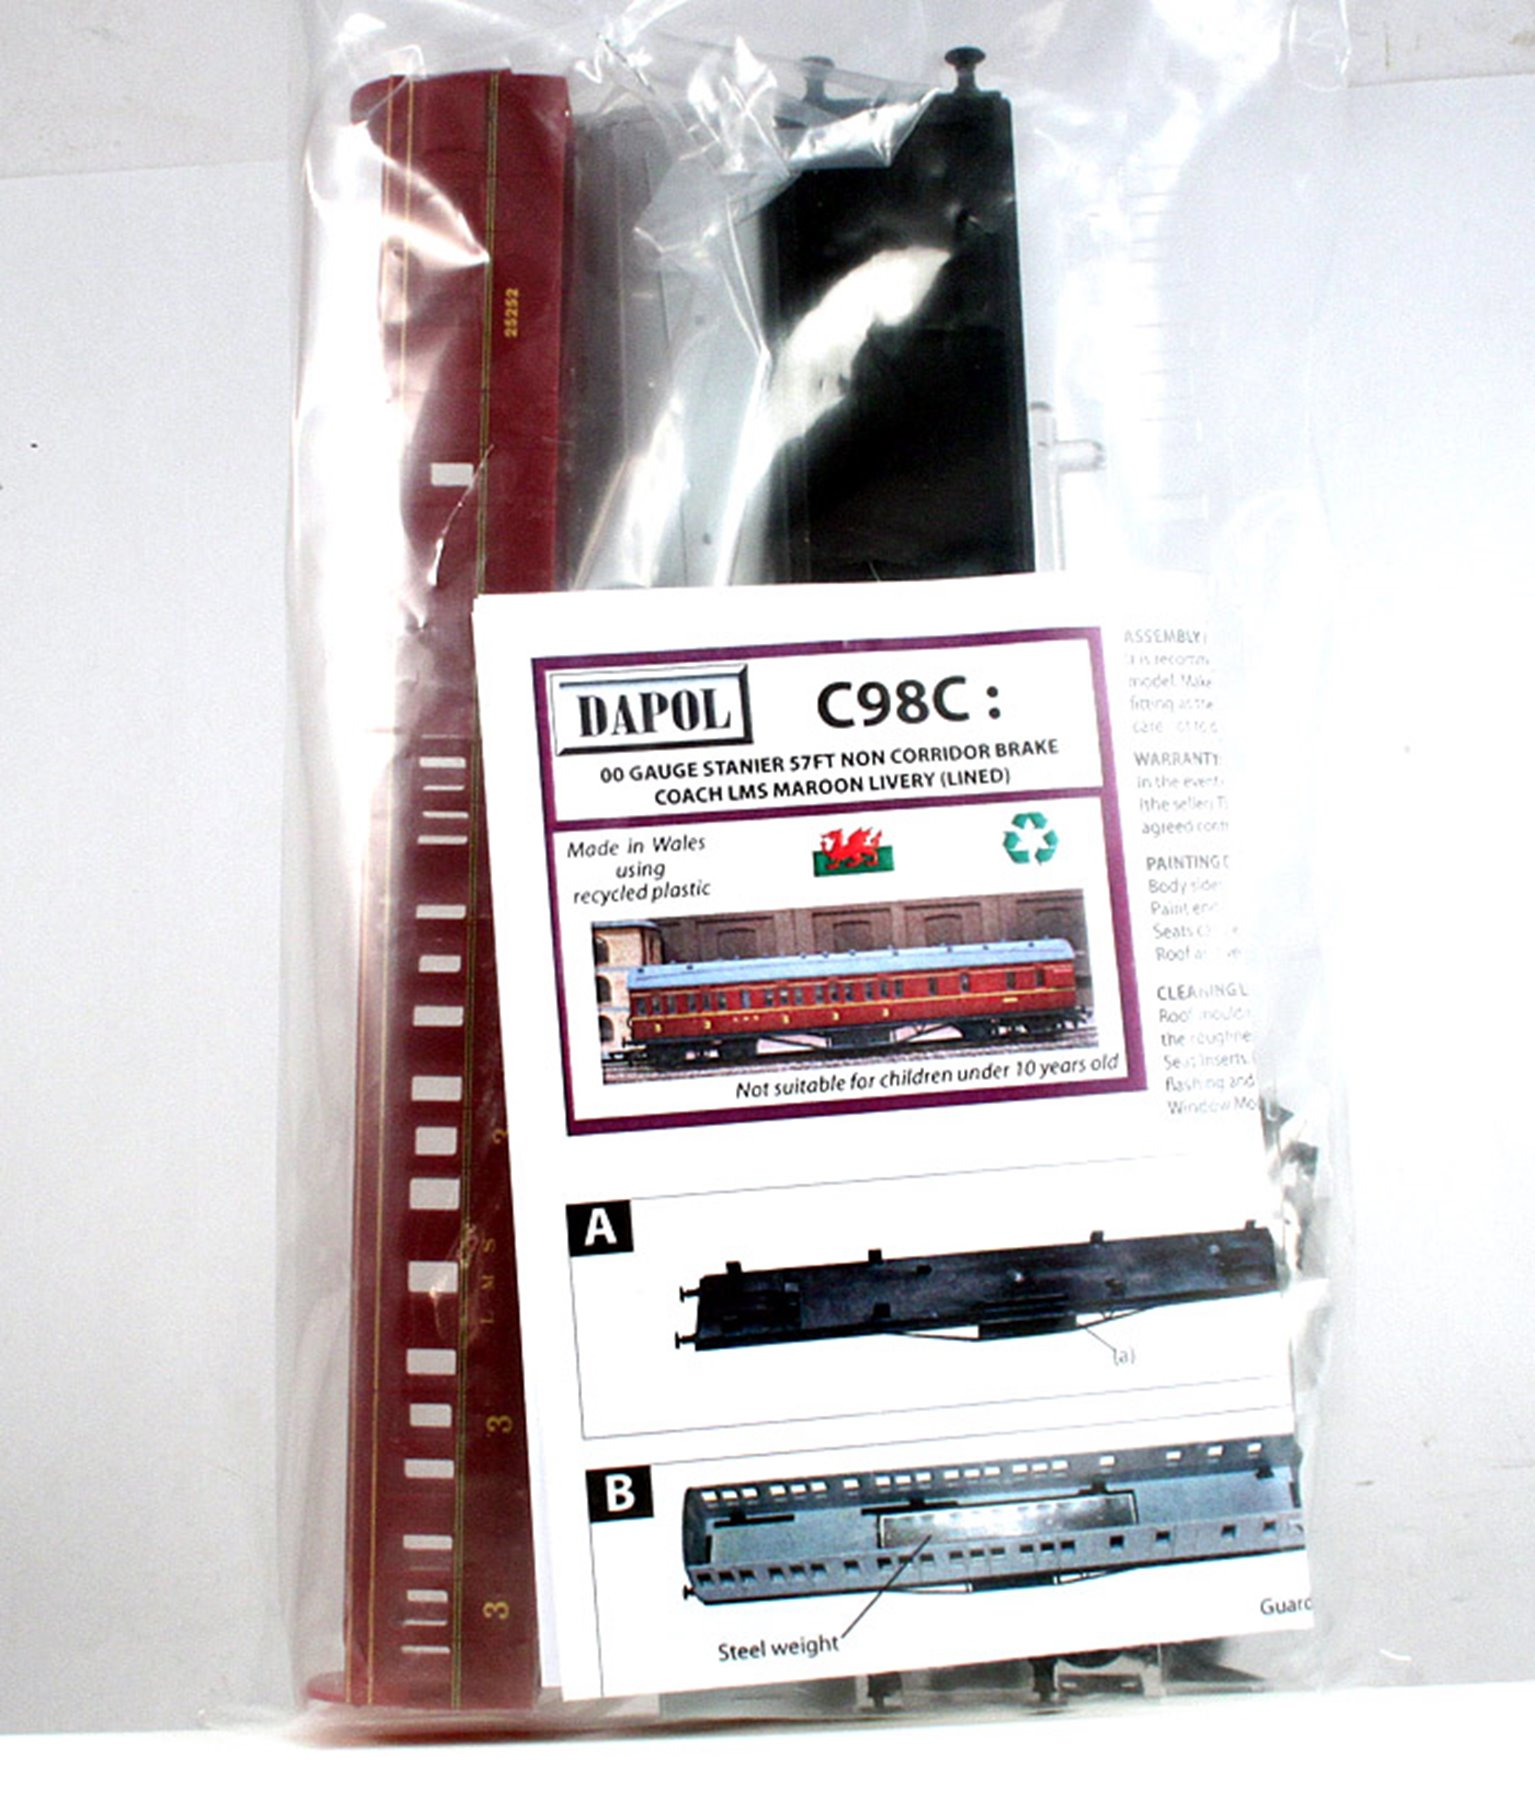 57ft Stanier Non Corridor Brake Composite Kit in LMS Maroon